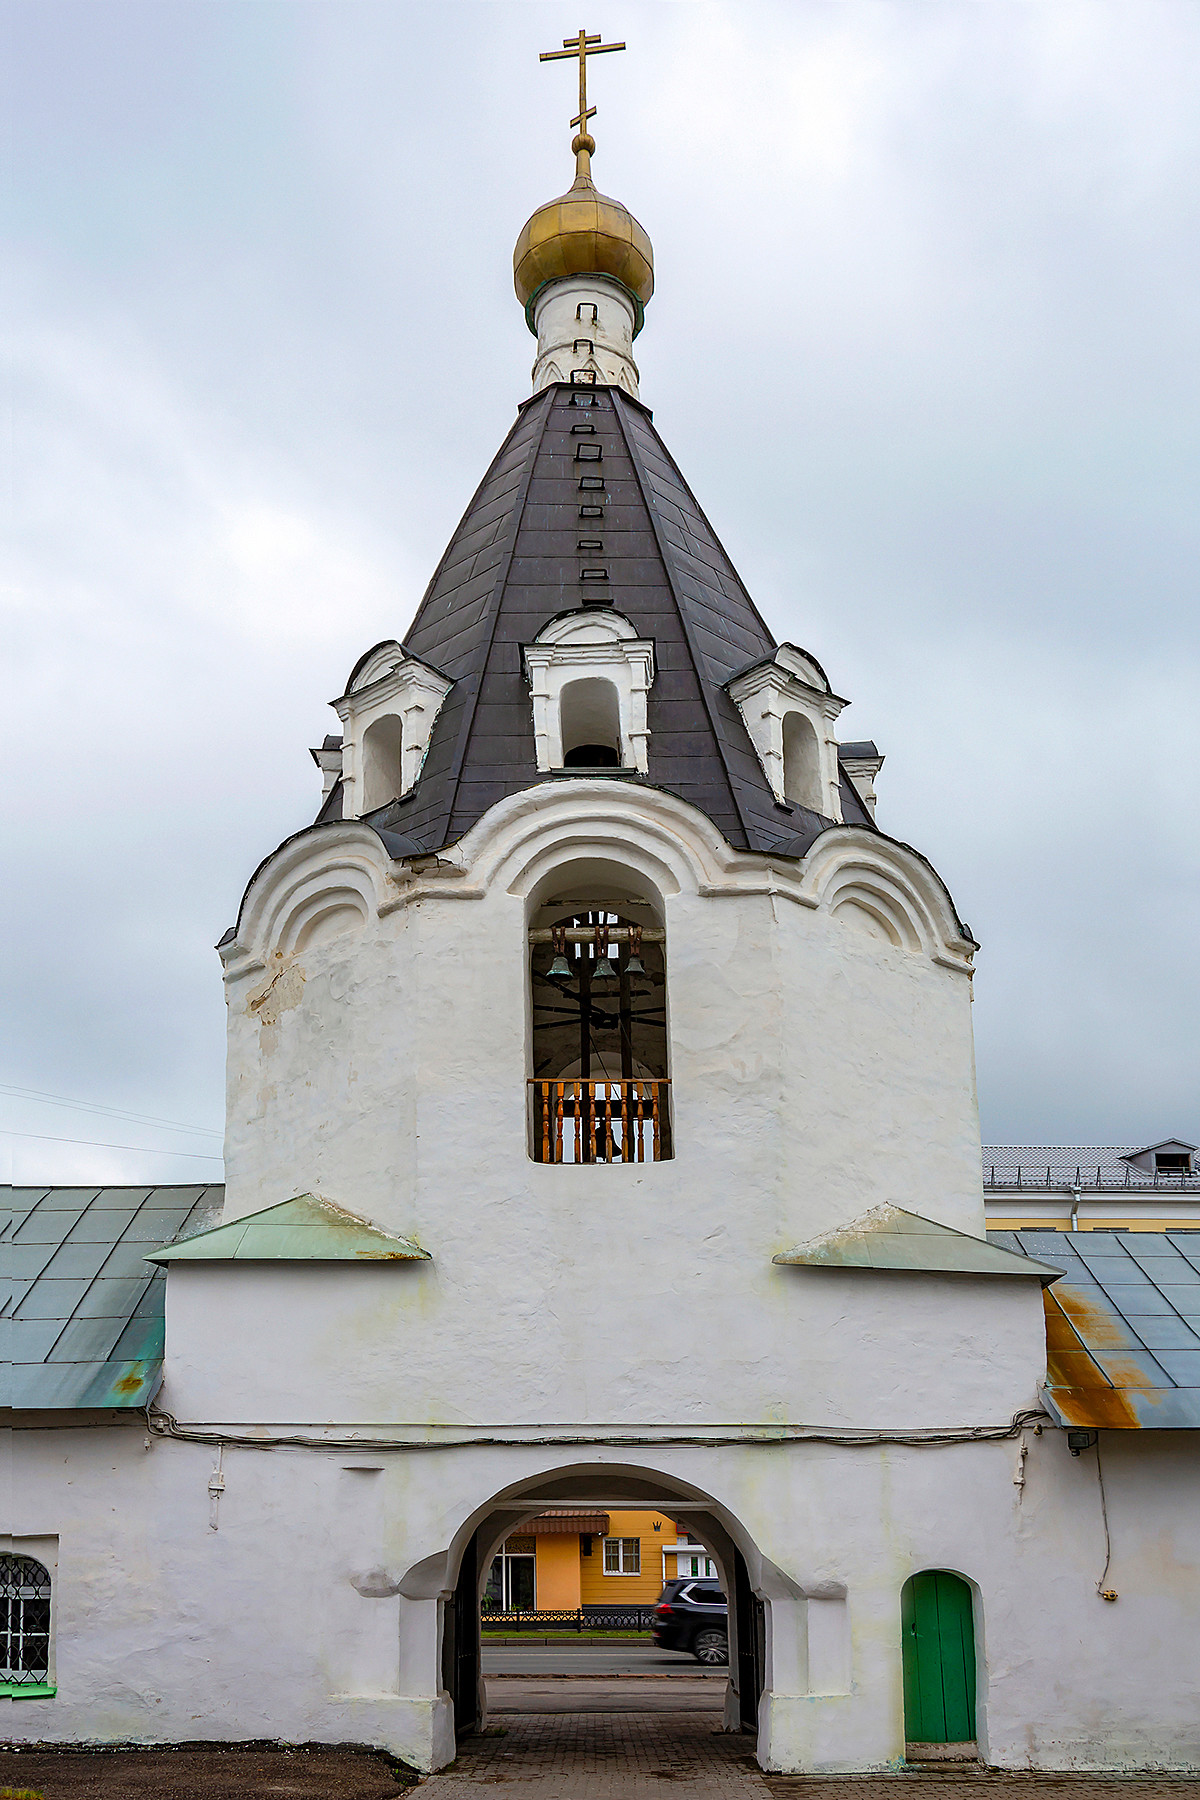 Church of the Archangel Michael with a bell tower